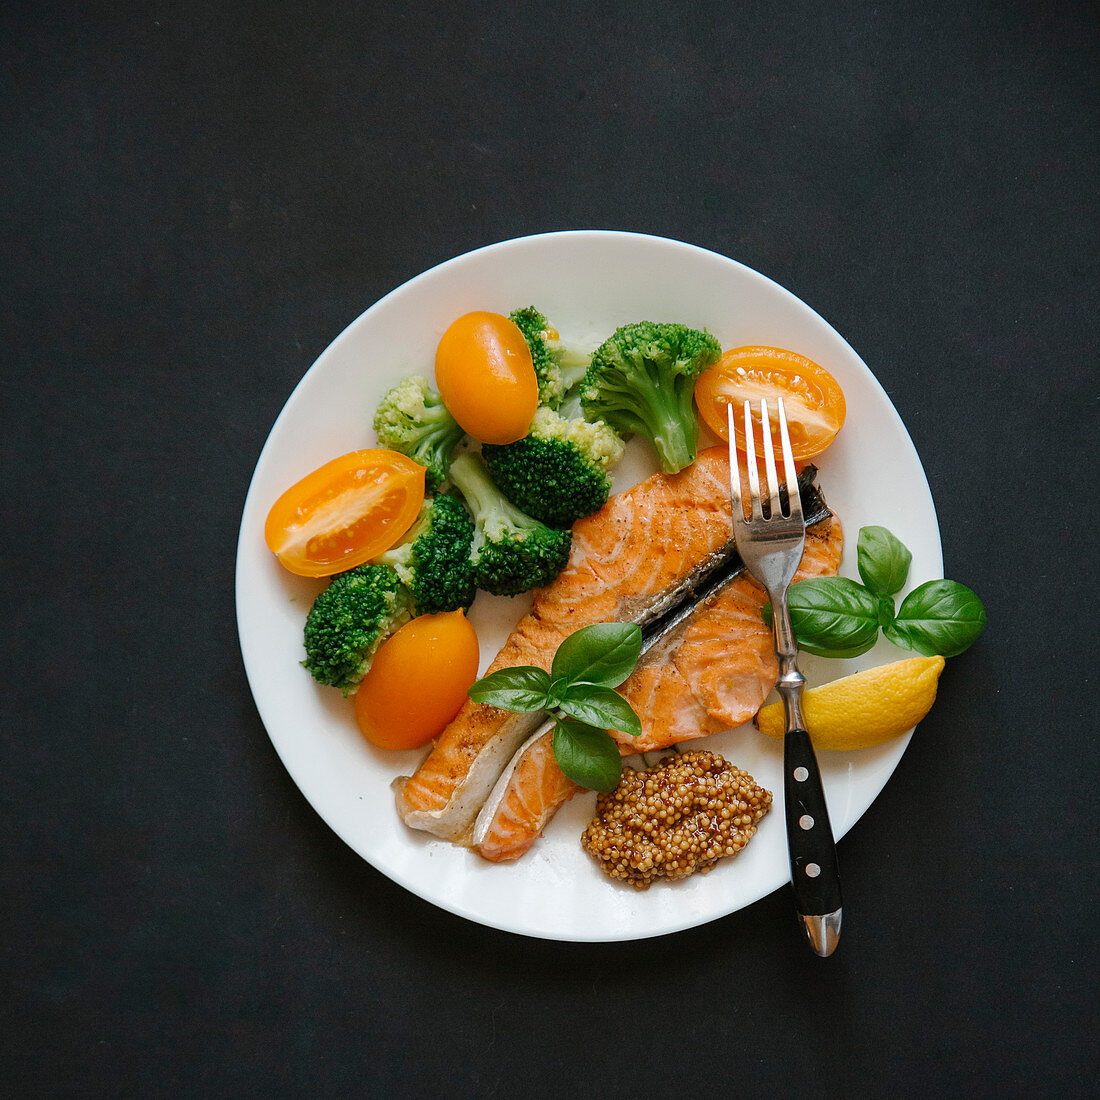 Salmon with broccoli, tomatoes and mustard